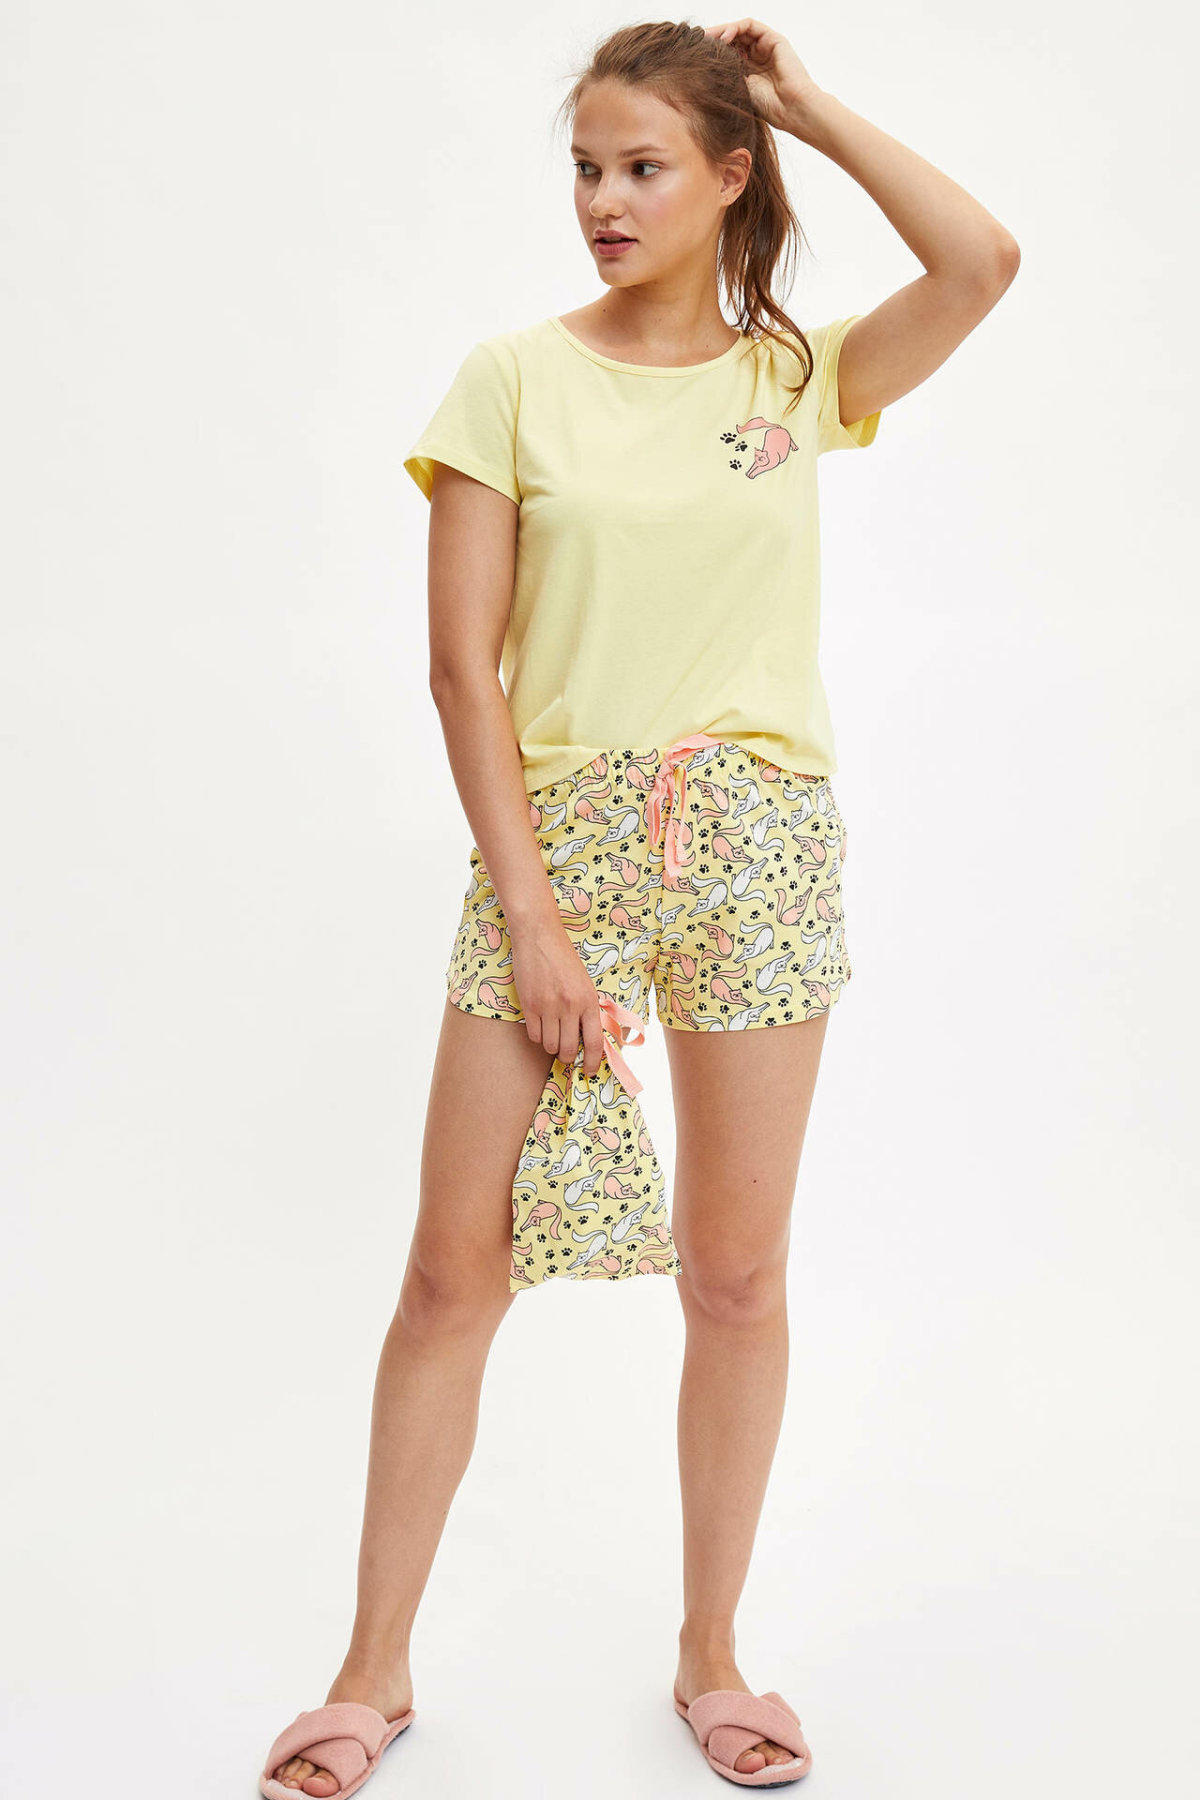 DeFacto Fashion Woman Knitted Sets Yellow Female Casual Lovely Pattern T-shirt Shorts Ladies Loose Comfort Clothes - K9596AZ19HS